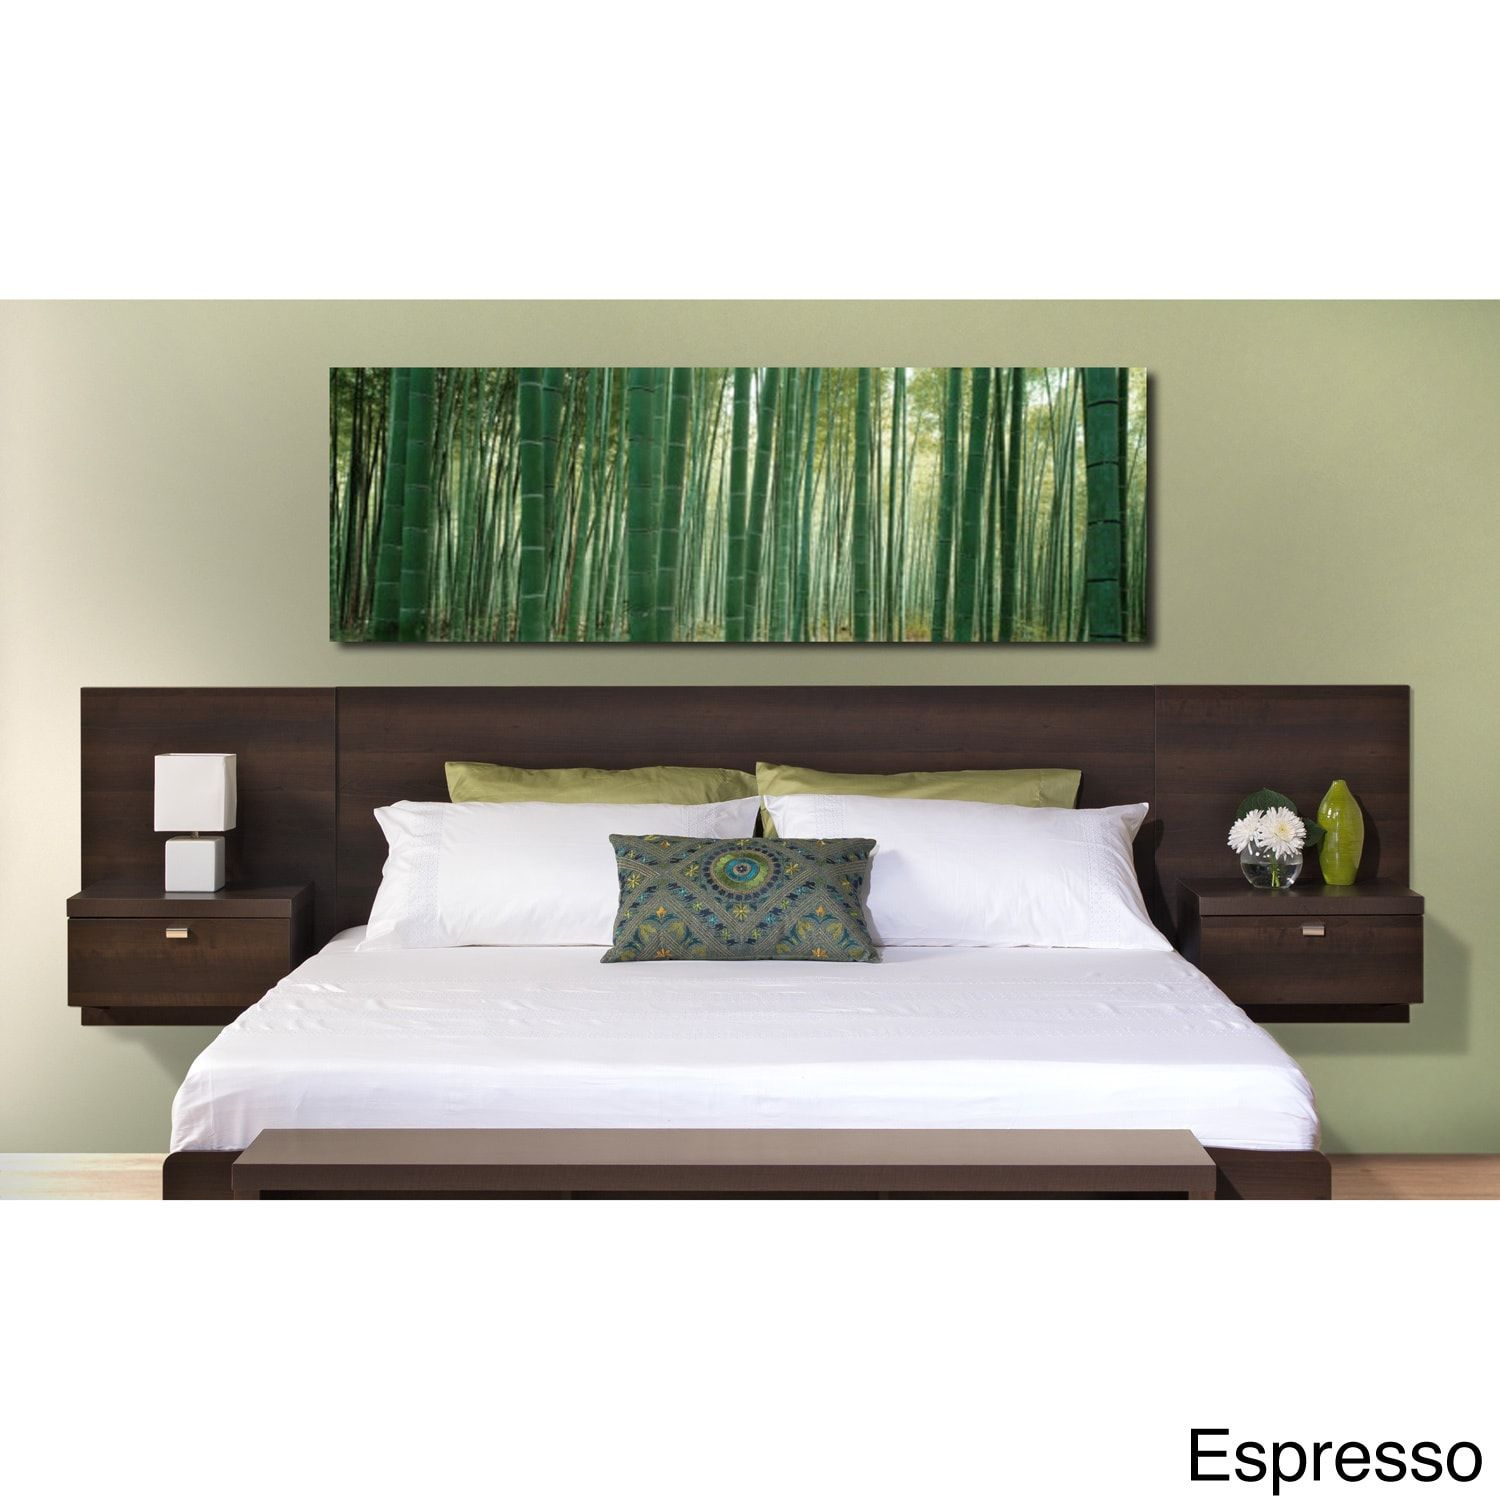 Valhalla Designer Series Floating King Headboard | Dormitorio y ...